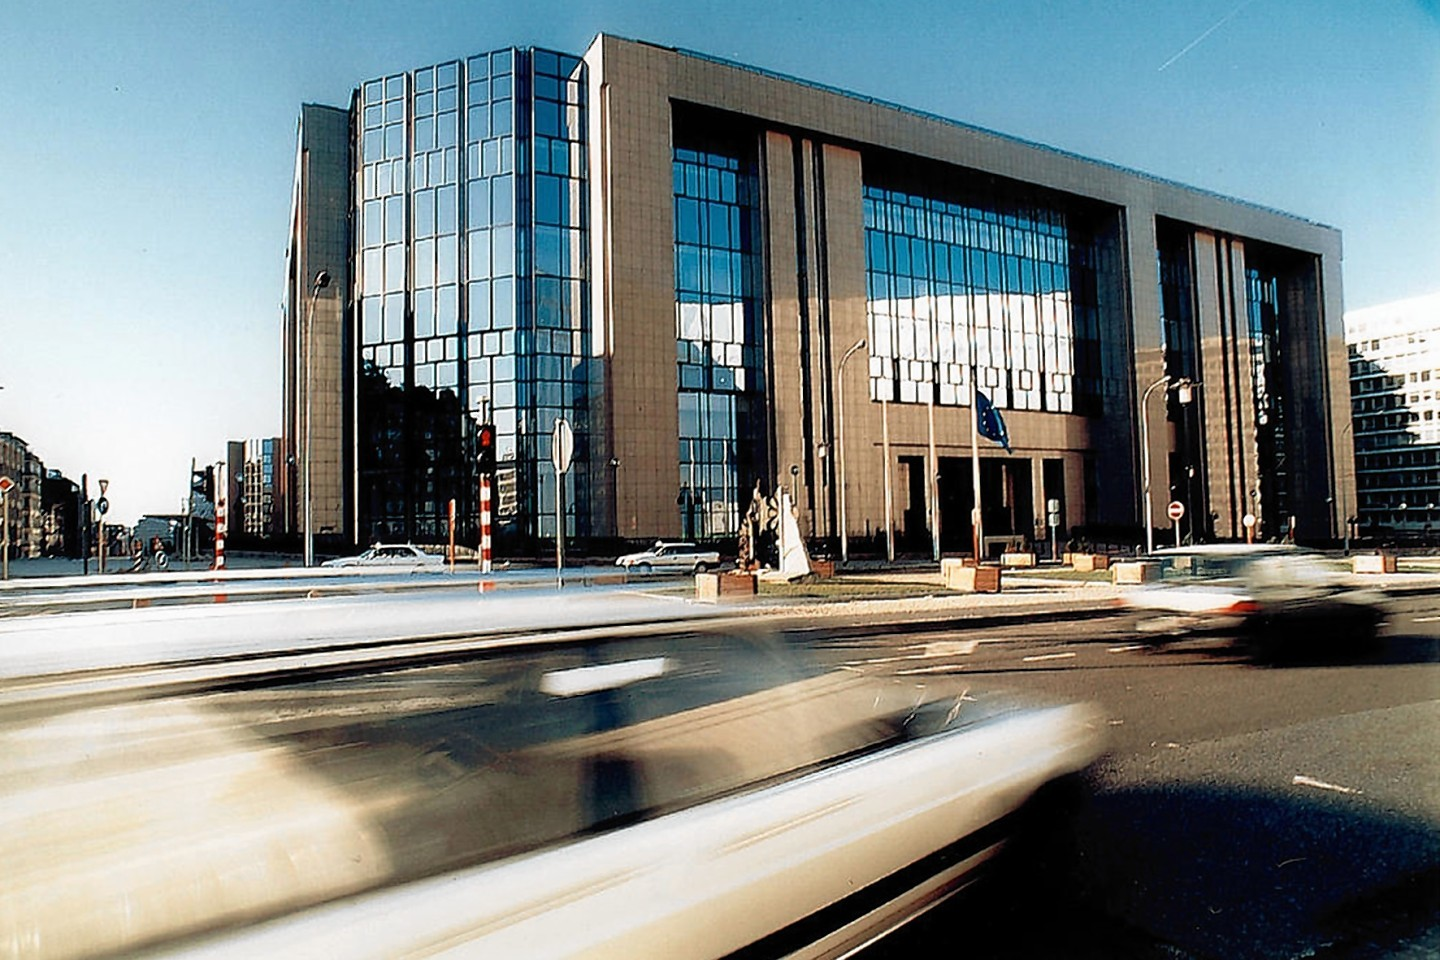 The Justus Lipsius building in Brussels, where the fish talks took place